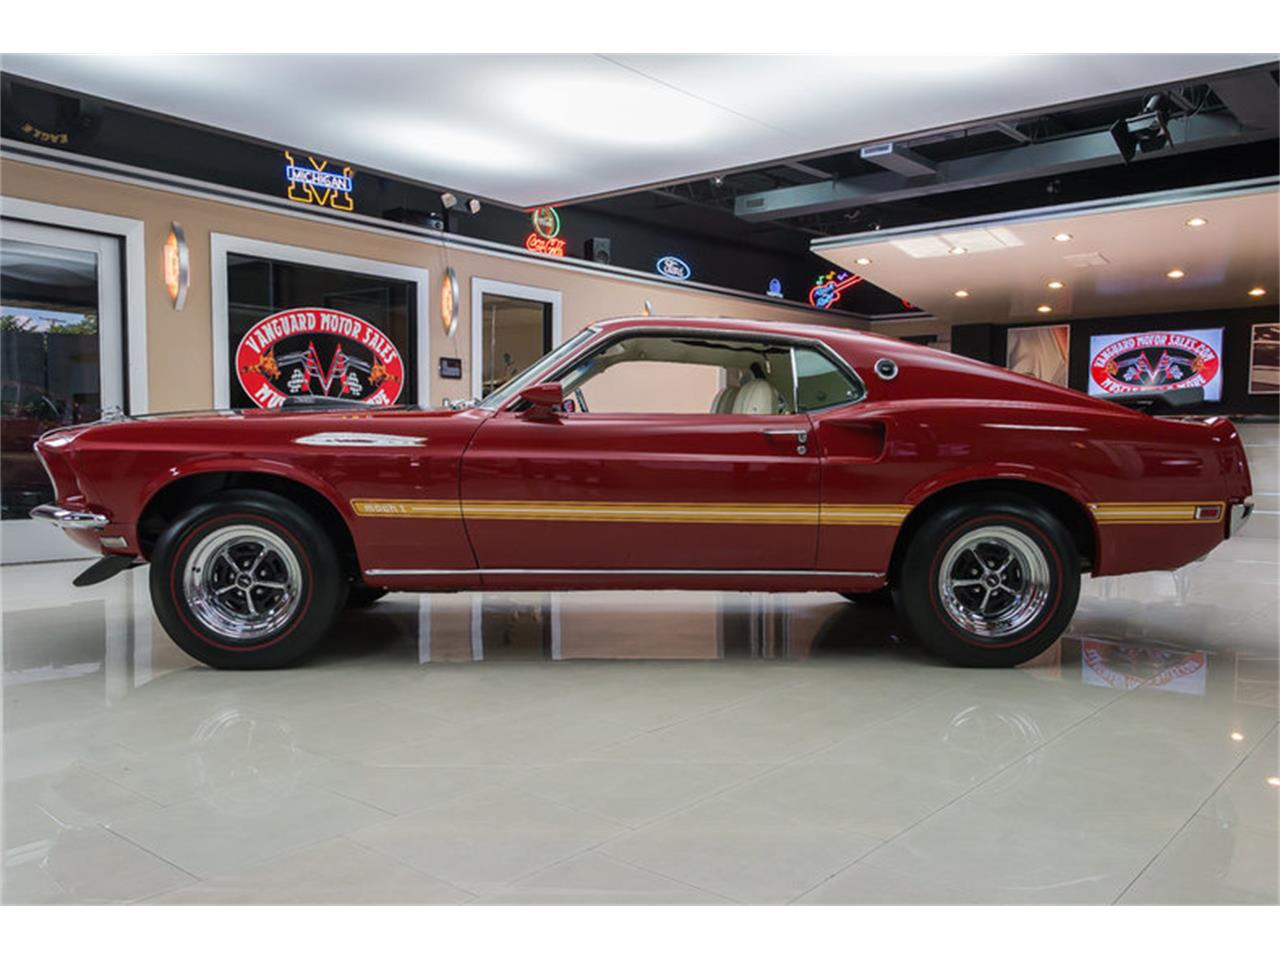 Large Picture of 1969 Ford Mustang Mach 1 S Code - $59,900.00 Offered by Vanguard Motor Sales - IS3G